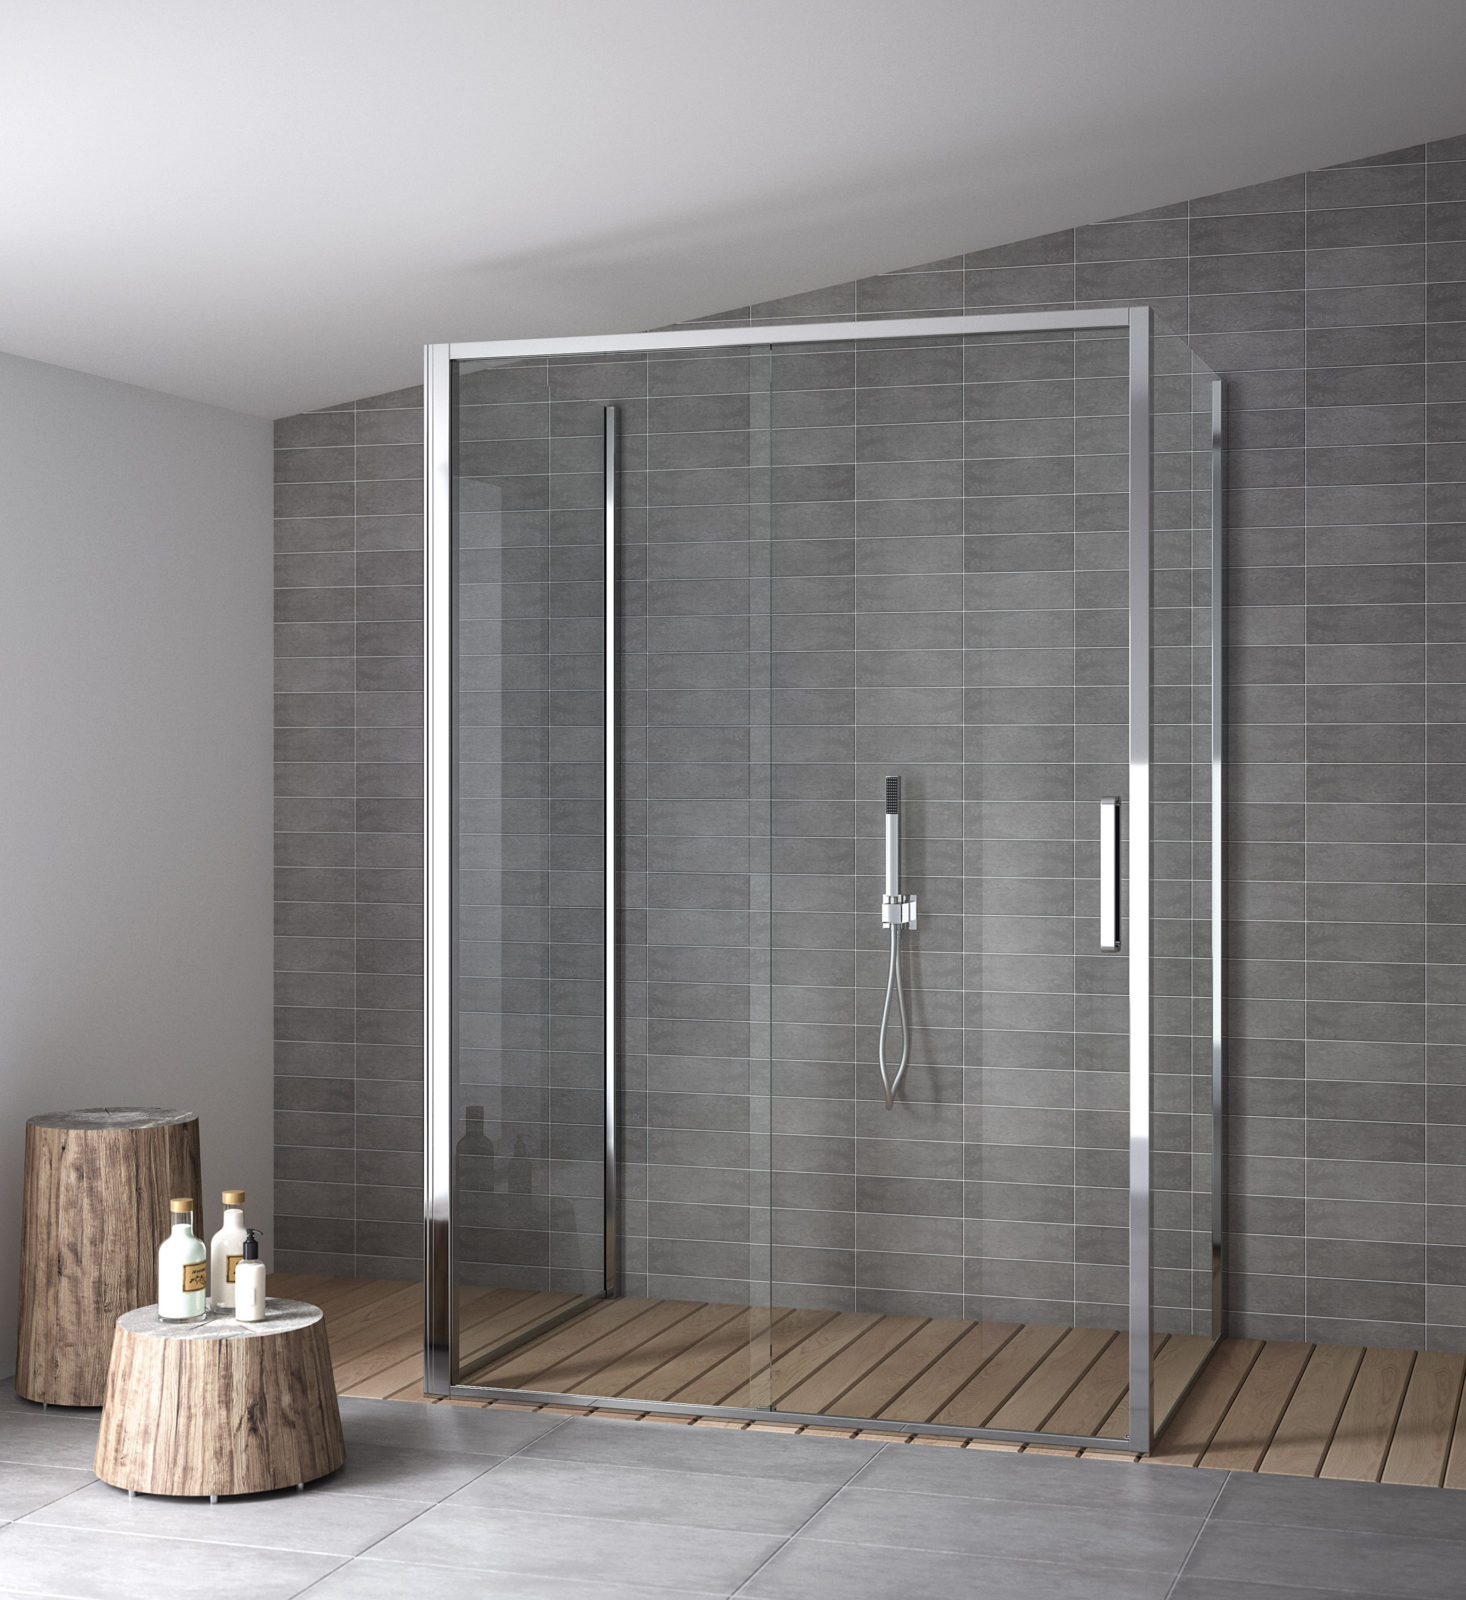 Three sided shower enclosure with sliding opening | Calibe